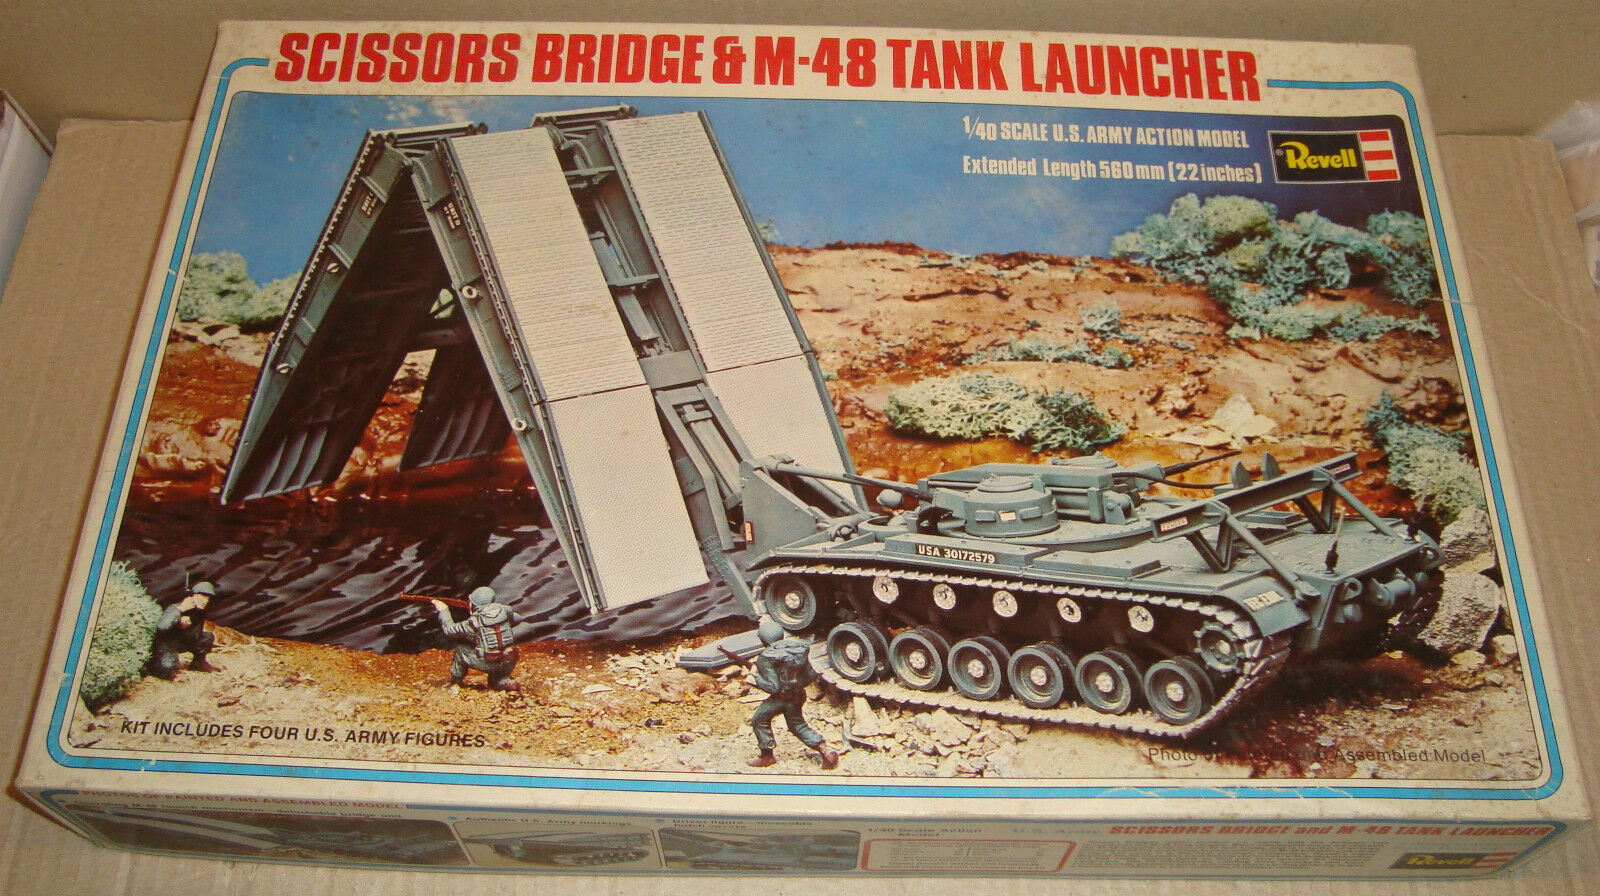 REVELL 1 40 SCALE H-558 U.S. ARMY SCISSORS BRIDGE & M-48 TANK LAUNCHER 1977